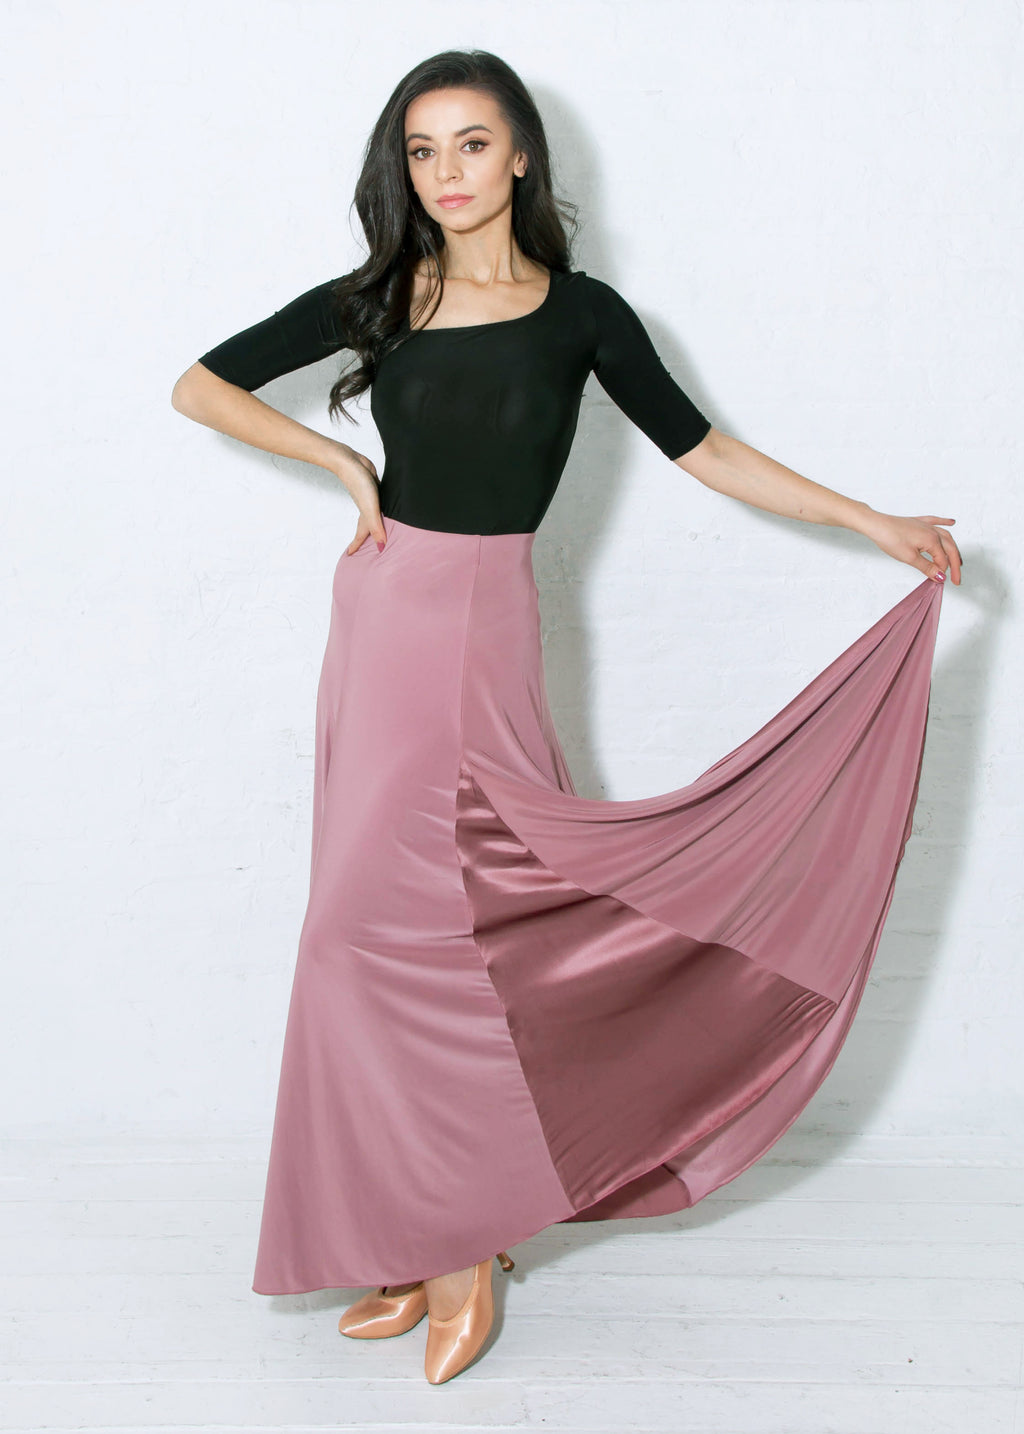 Ballroom dance skirt in dusty rose with wide maxi length, 6 inserts of flowing silk charmeuse and spandex.